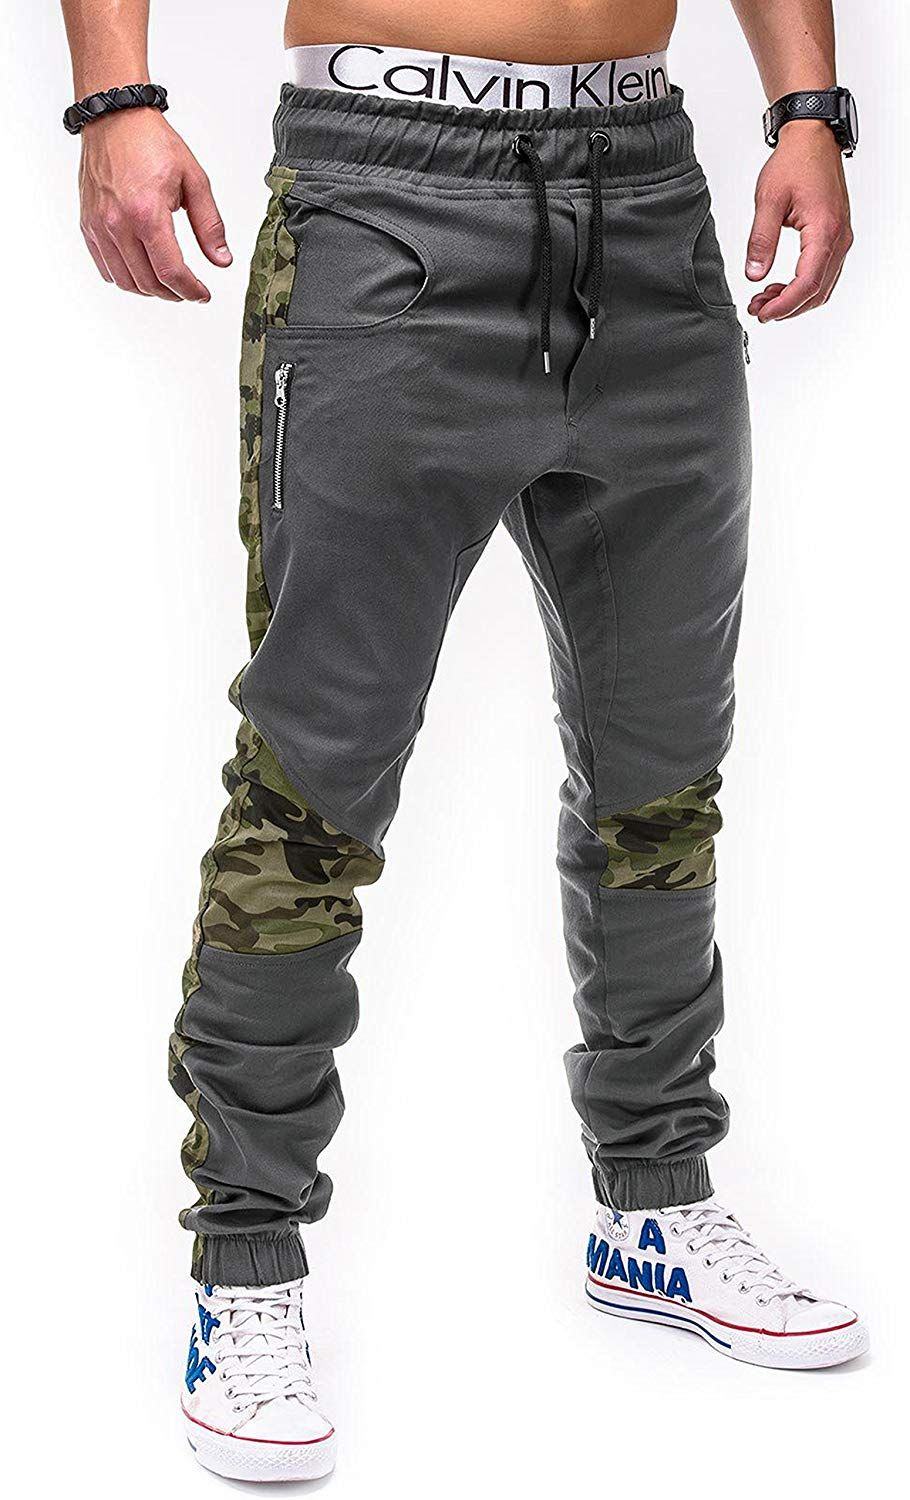 Betterstylz Dixonbz Chino Jogger Harem Style Jogginghose Trainingshose Camouflage Tarn Muster In Div Farben S Xxl Small Jogginghose Chino Jogger Camouflage